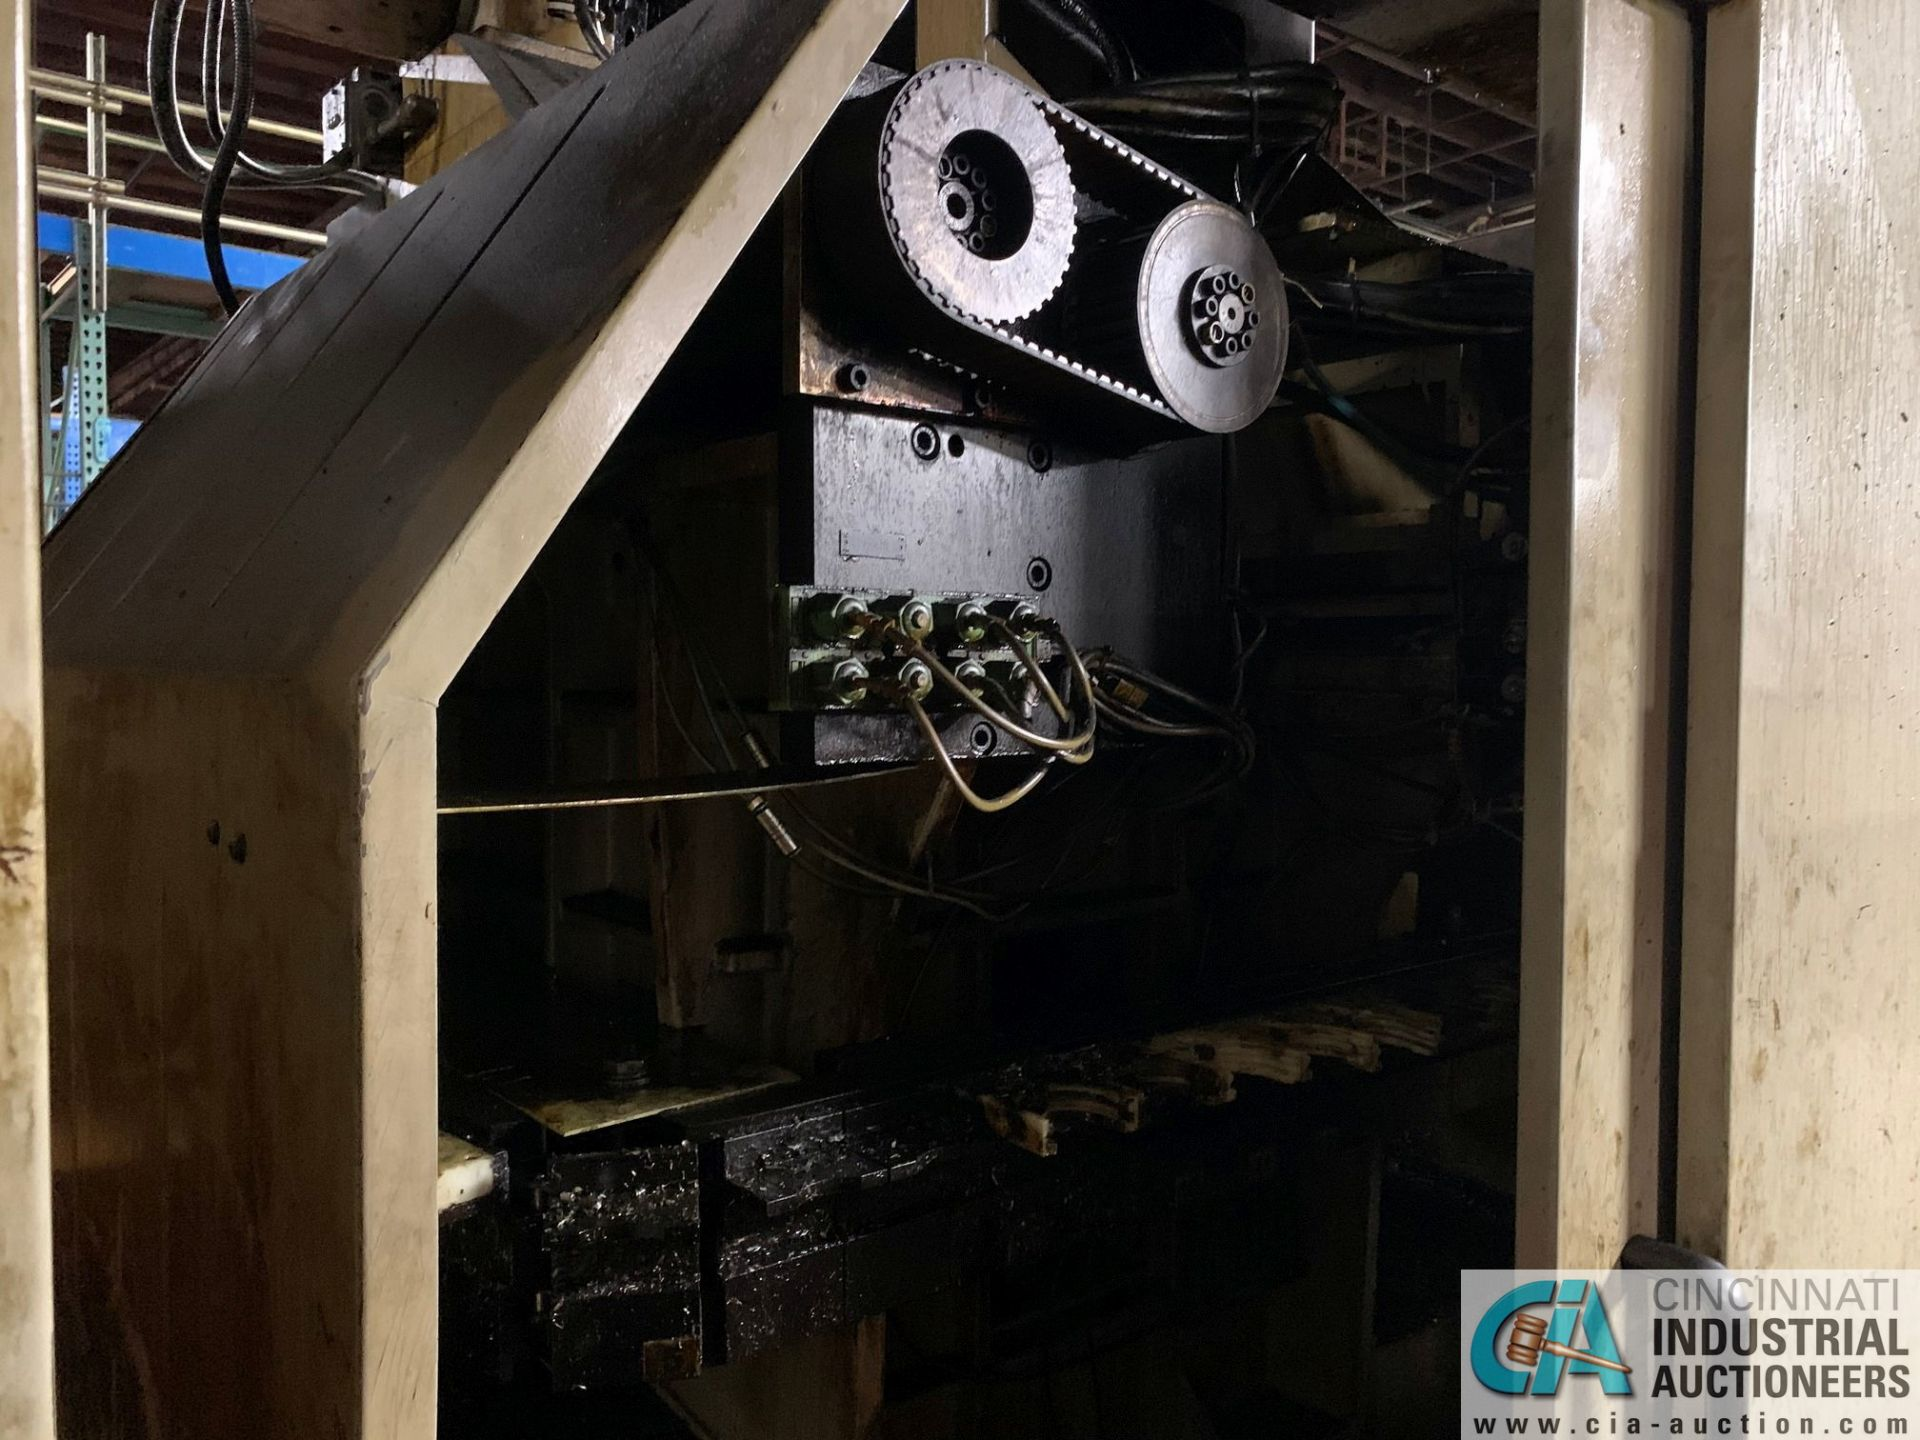 MONARCH UNISIGN TYPE UNIVERS 4 ZONALL 4 CNC VERTICAL MACHINING CENTER; S/N 99Z402, NO. 4292, - Image 7 of 11